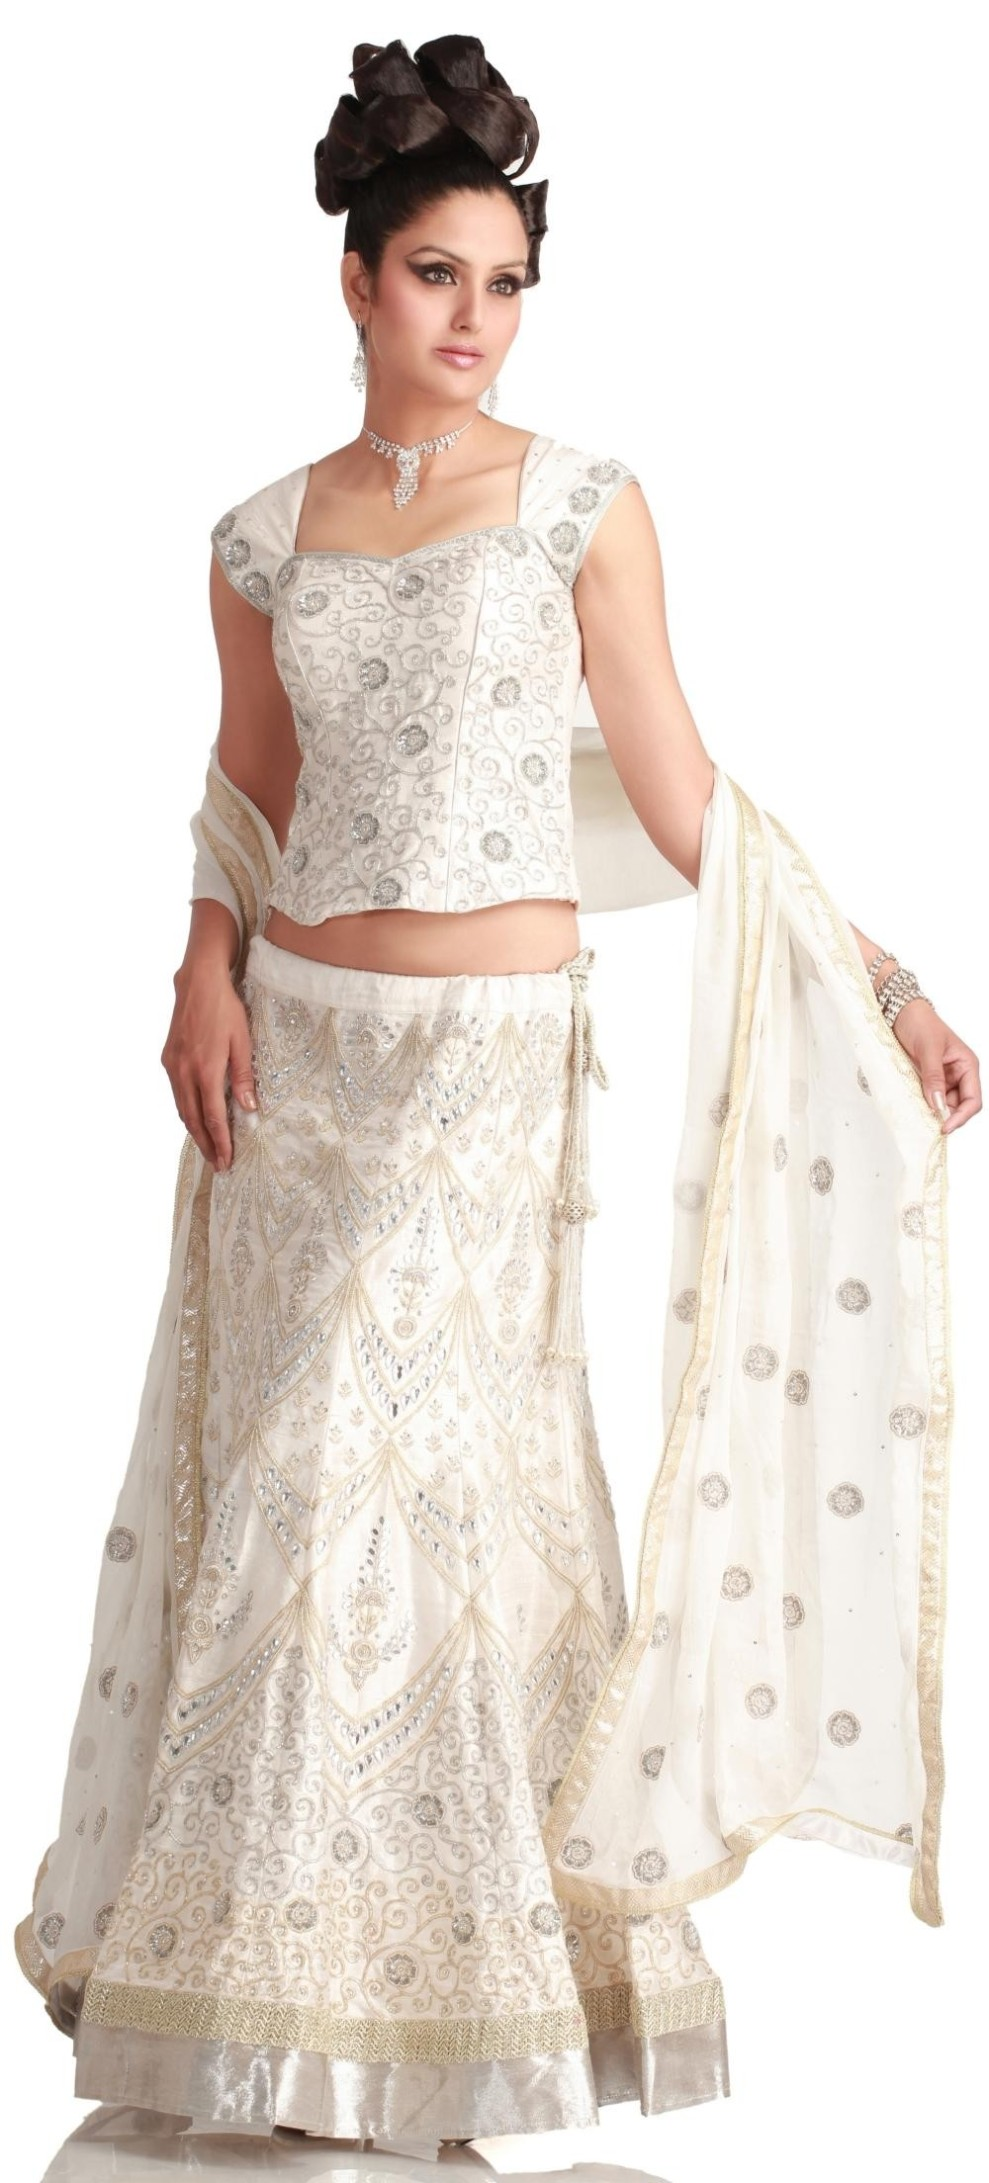 Monsoon Wedding Collection -Crystal white lehenga choli dupatta Online